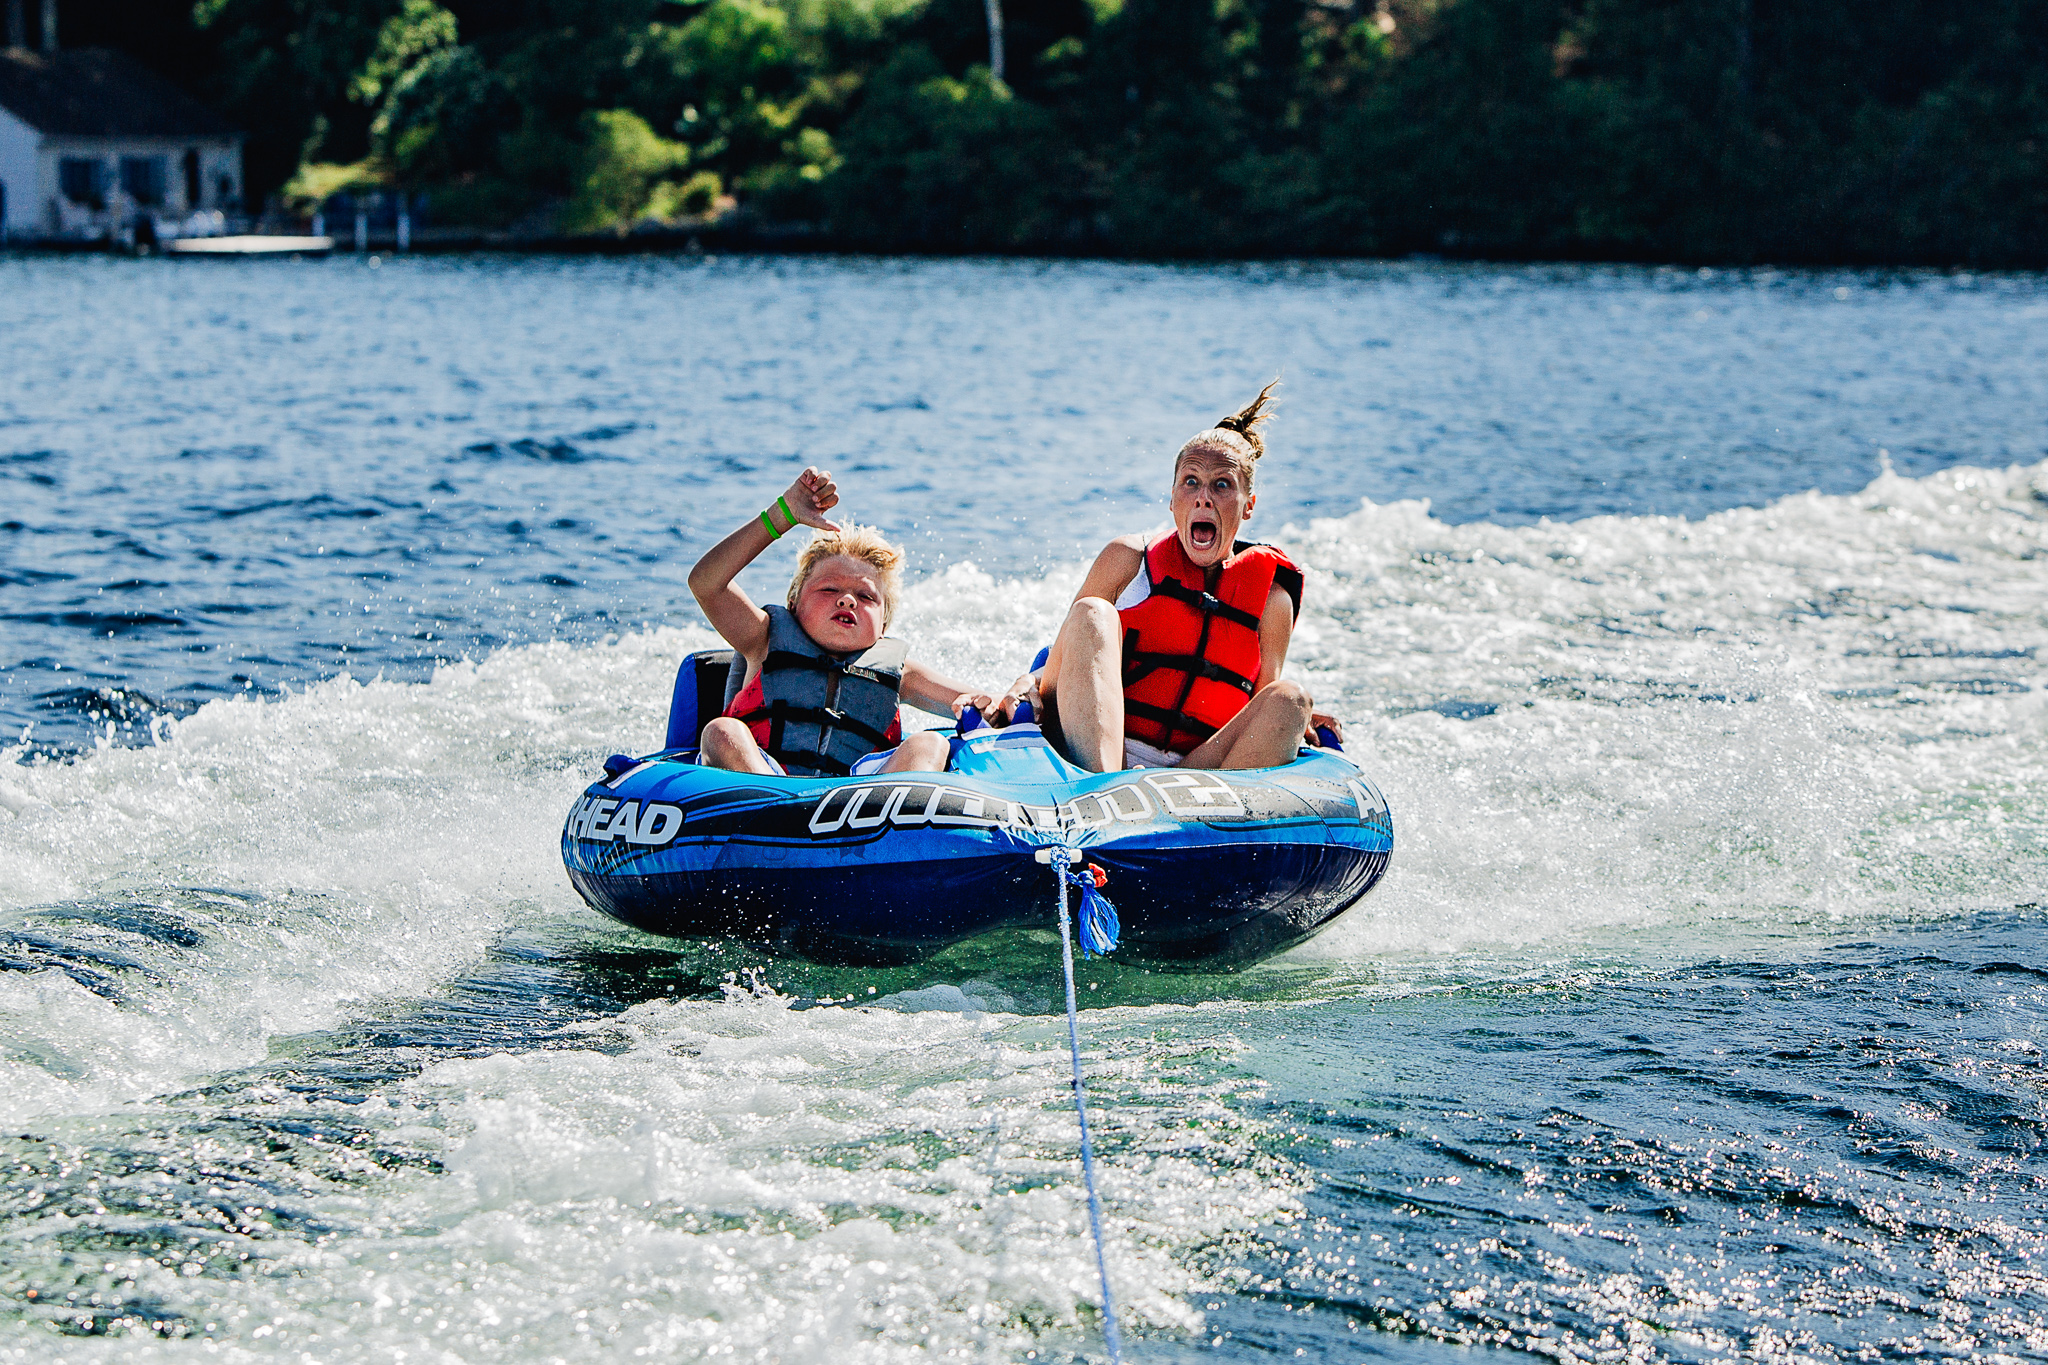 mom and son screaming while tubing on the lake